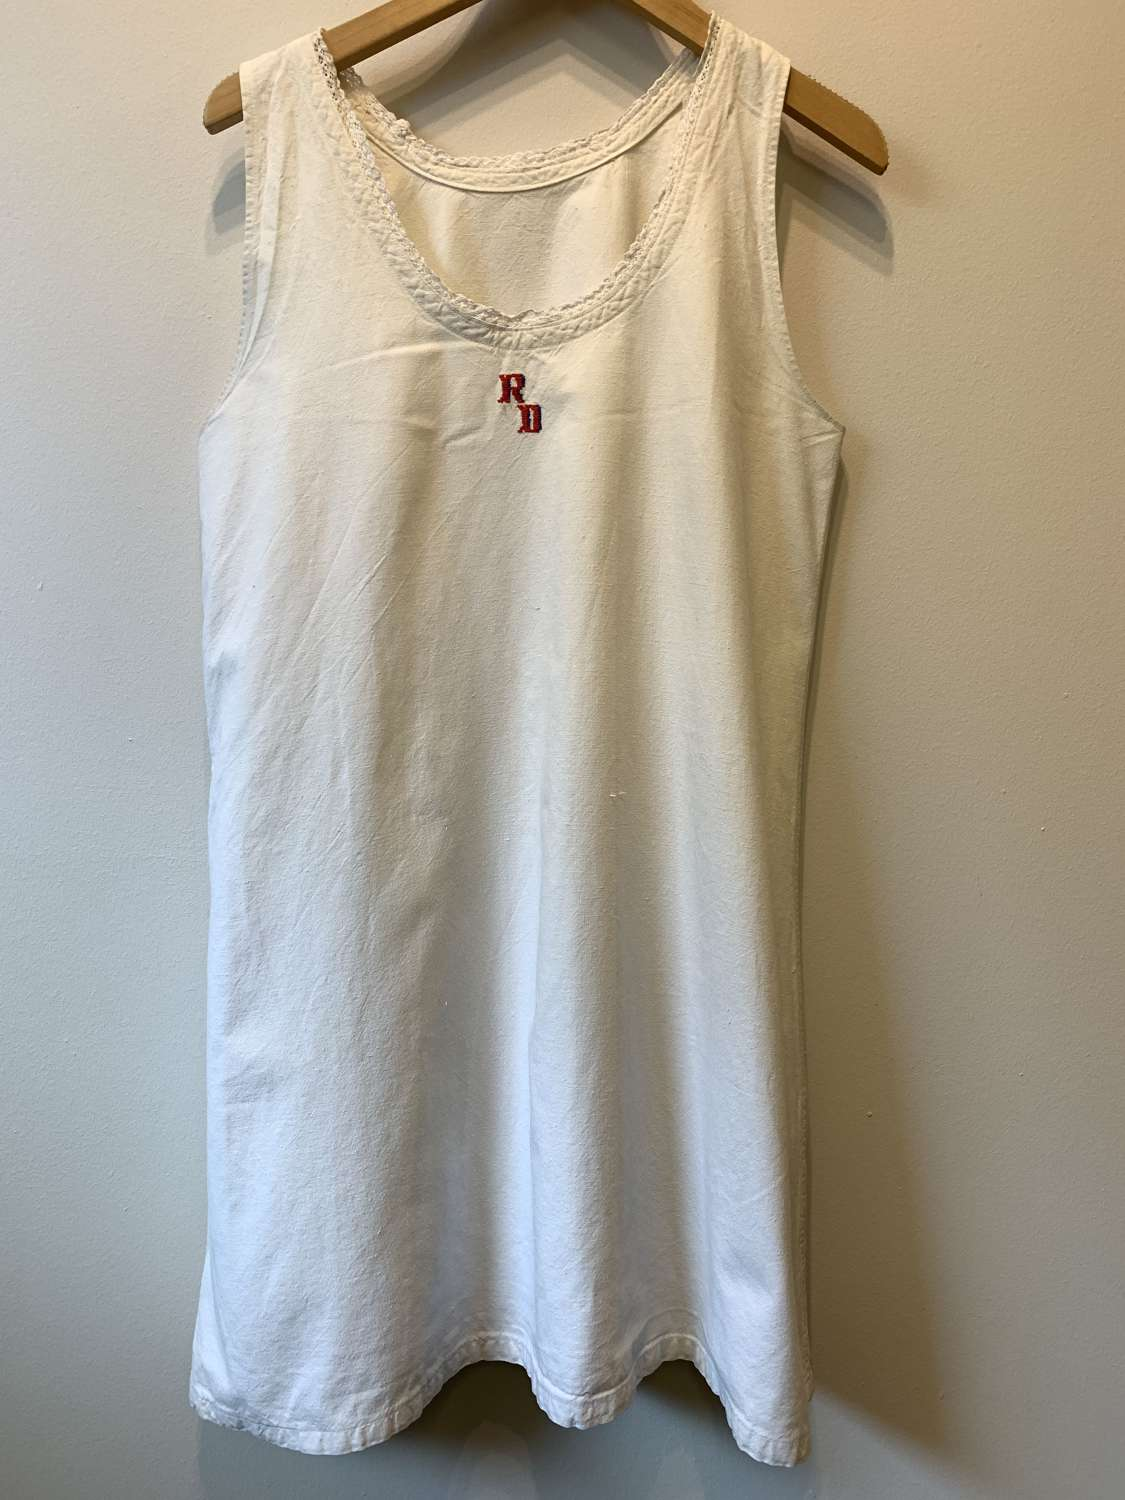 Vintage French chemise with momogramme